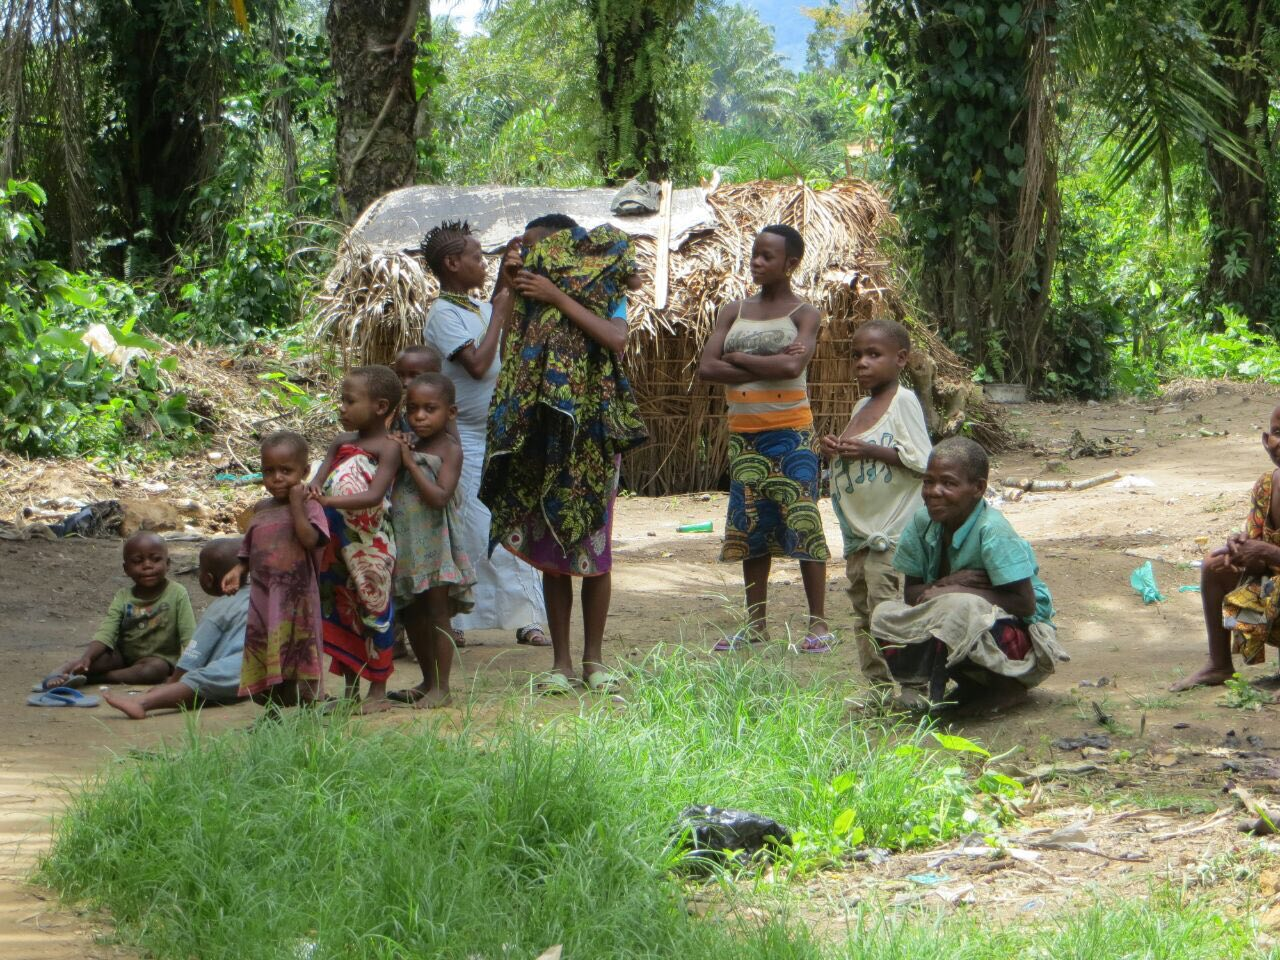 Pygmy population in DR Congo forced to flee because of those fighting and competing for the country's natural resources.